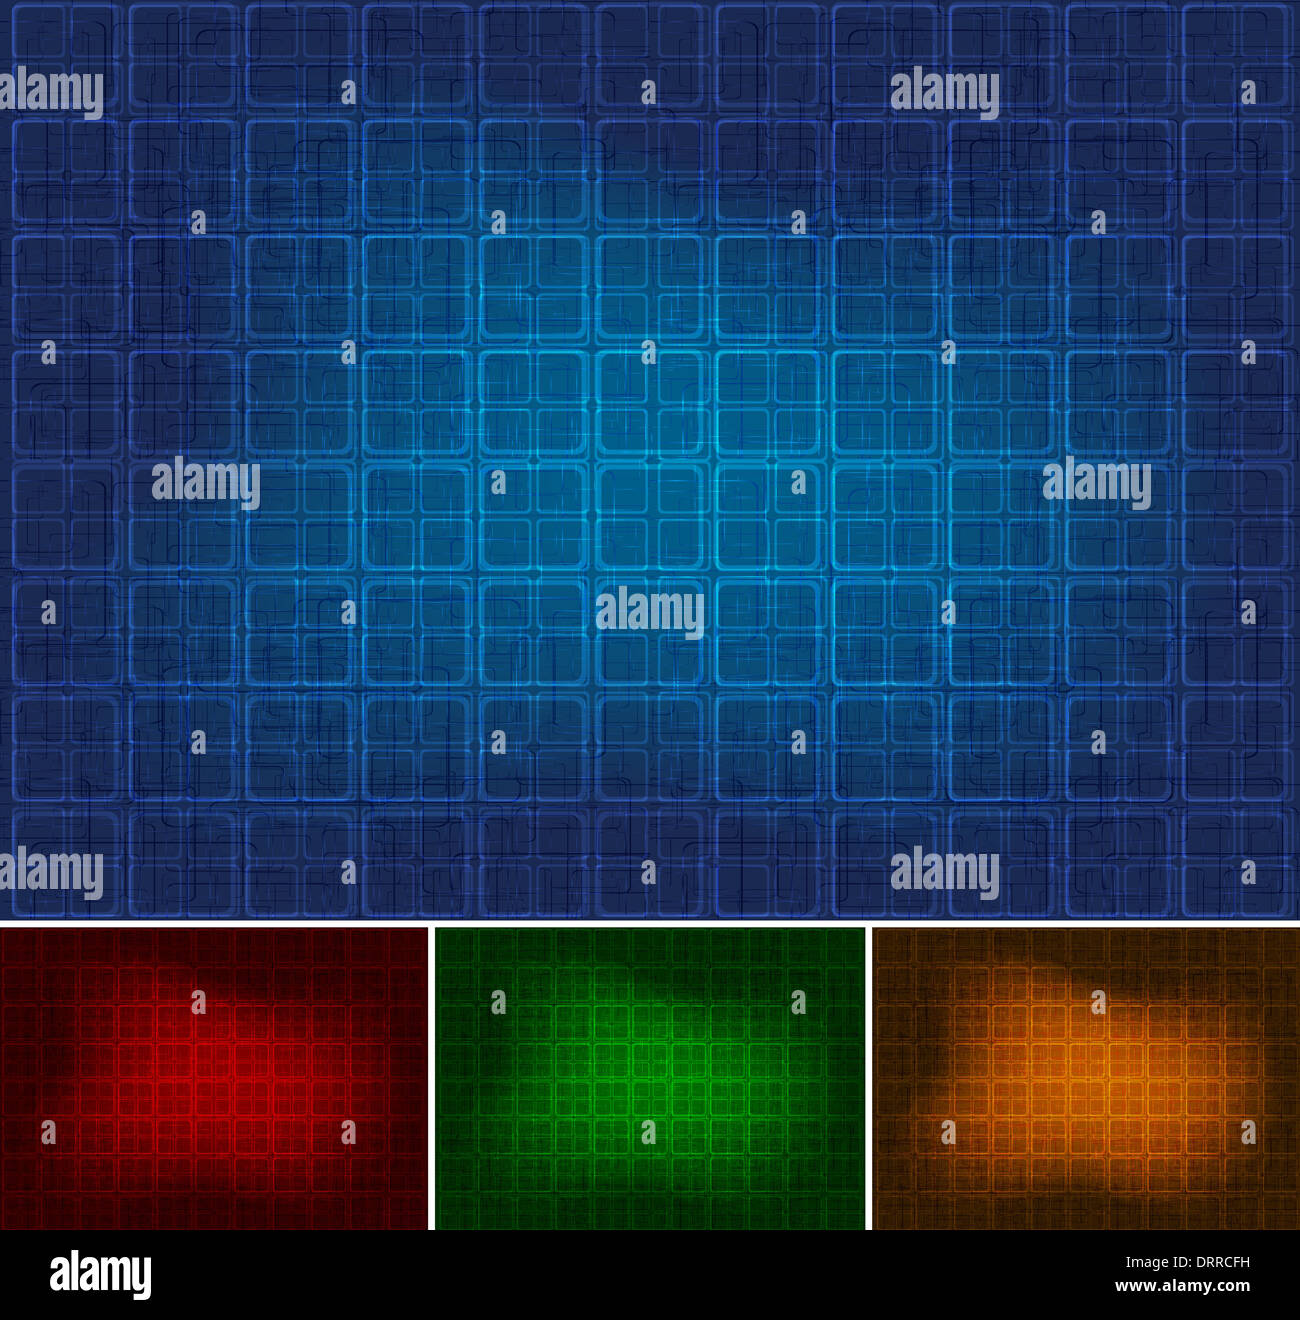 dark red technical abstract background stock photos & dark red